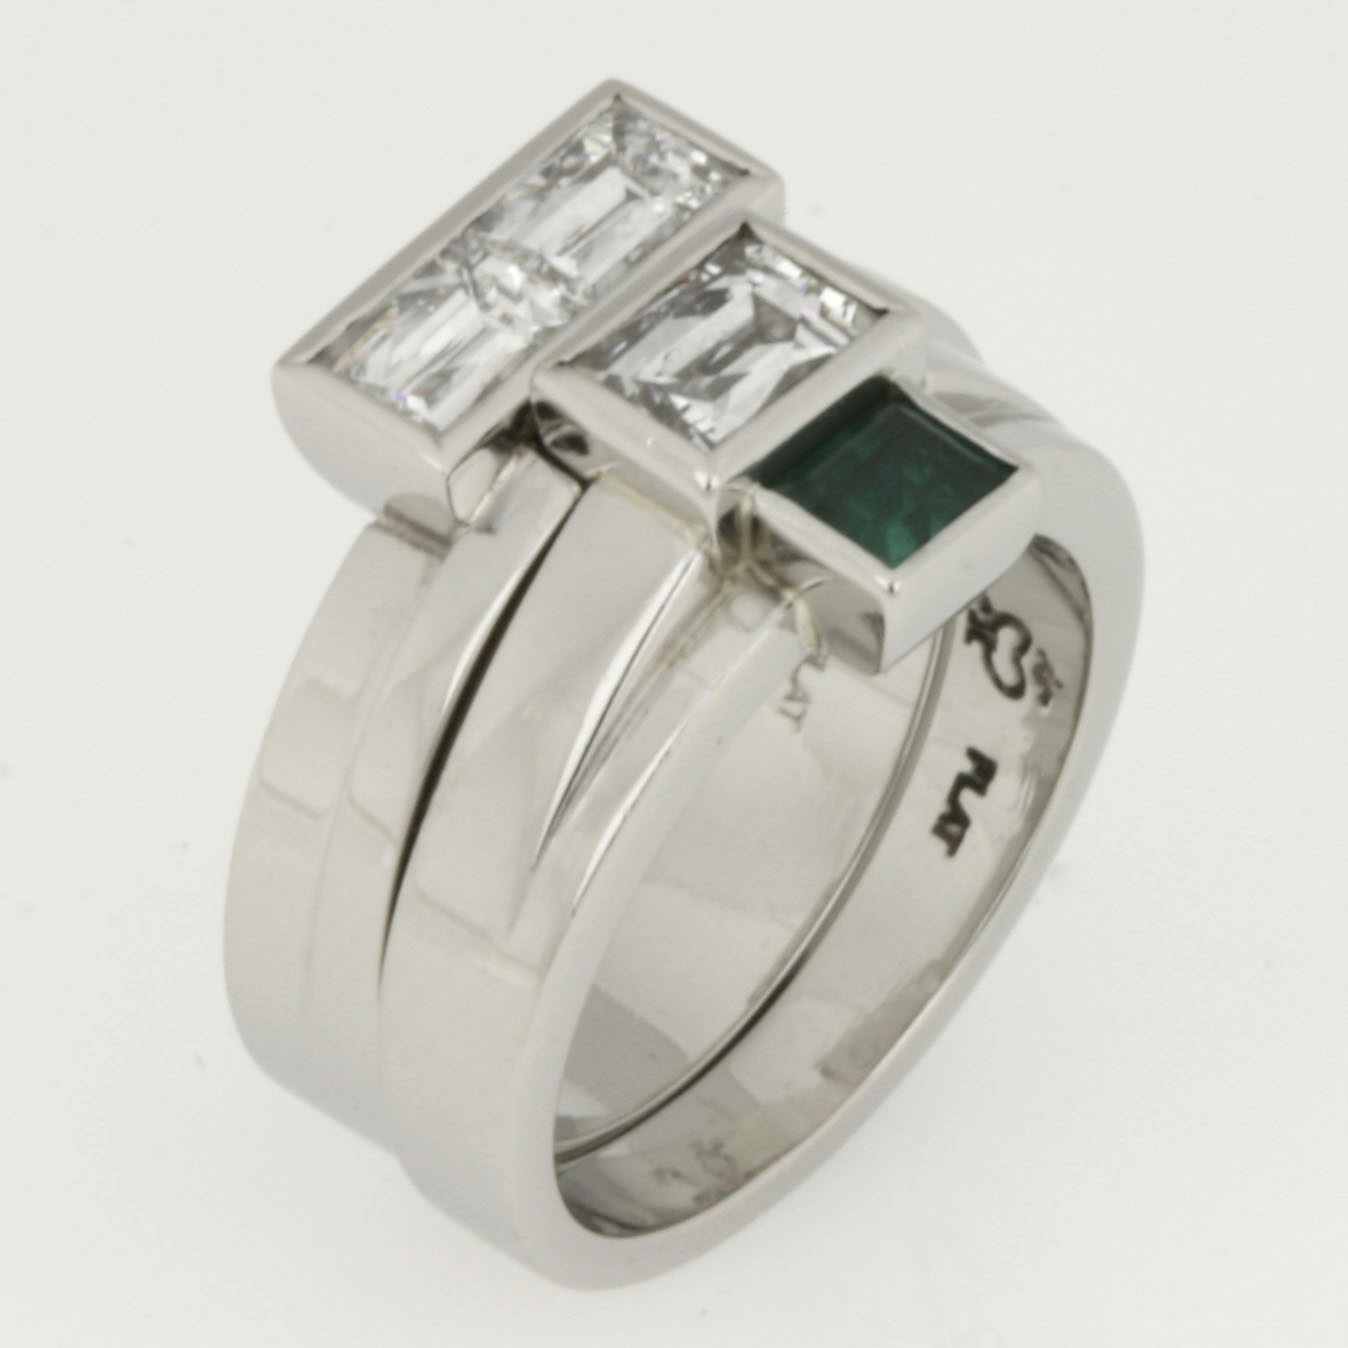 Handmade ladies 'Tycoon' cut diamond and emerald platinum wedding set